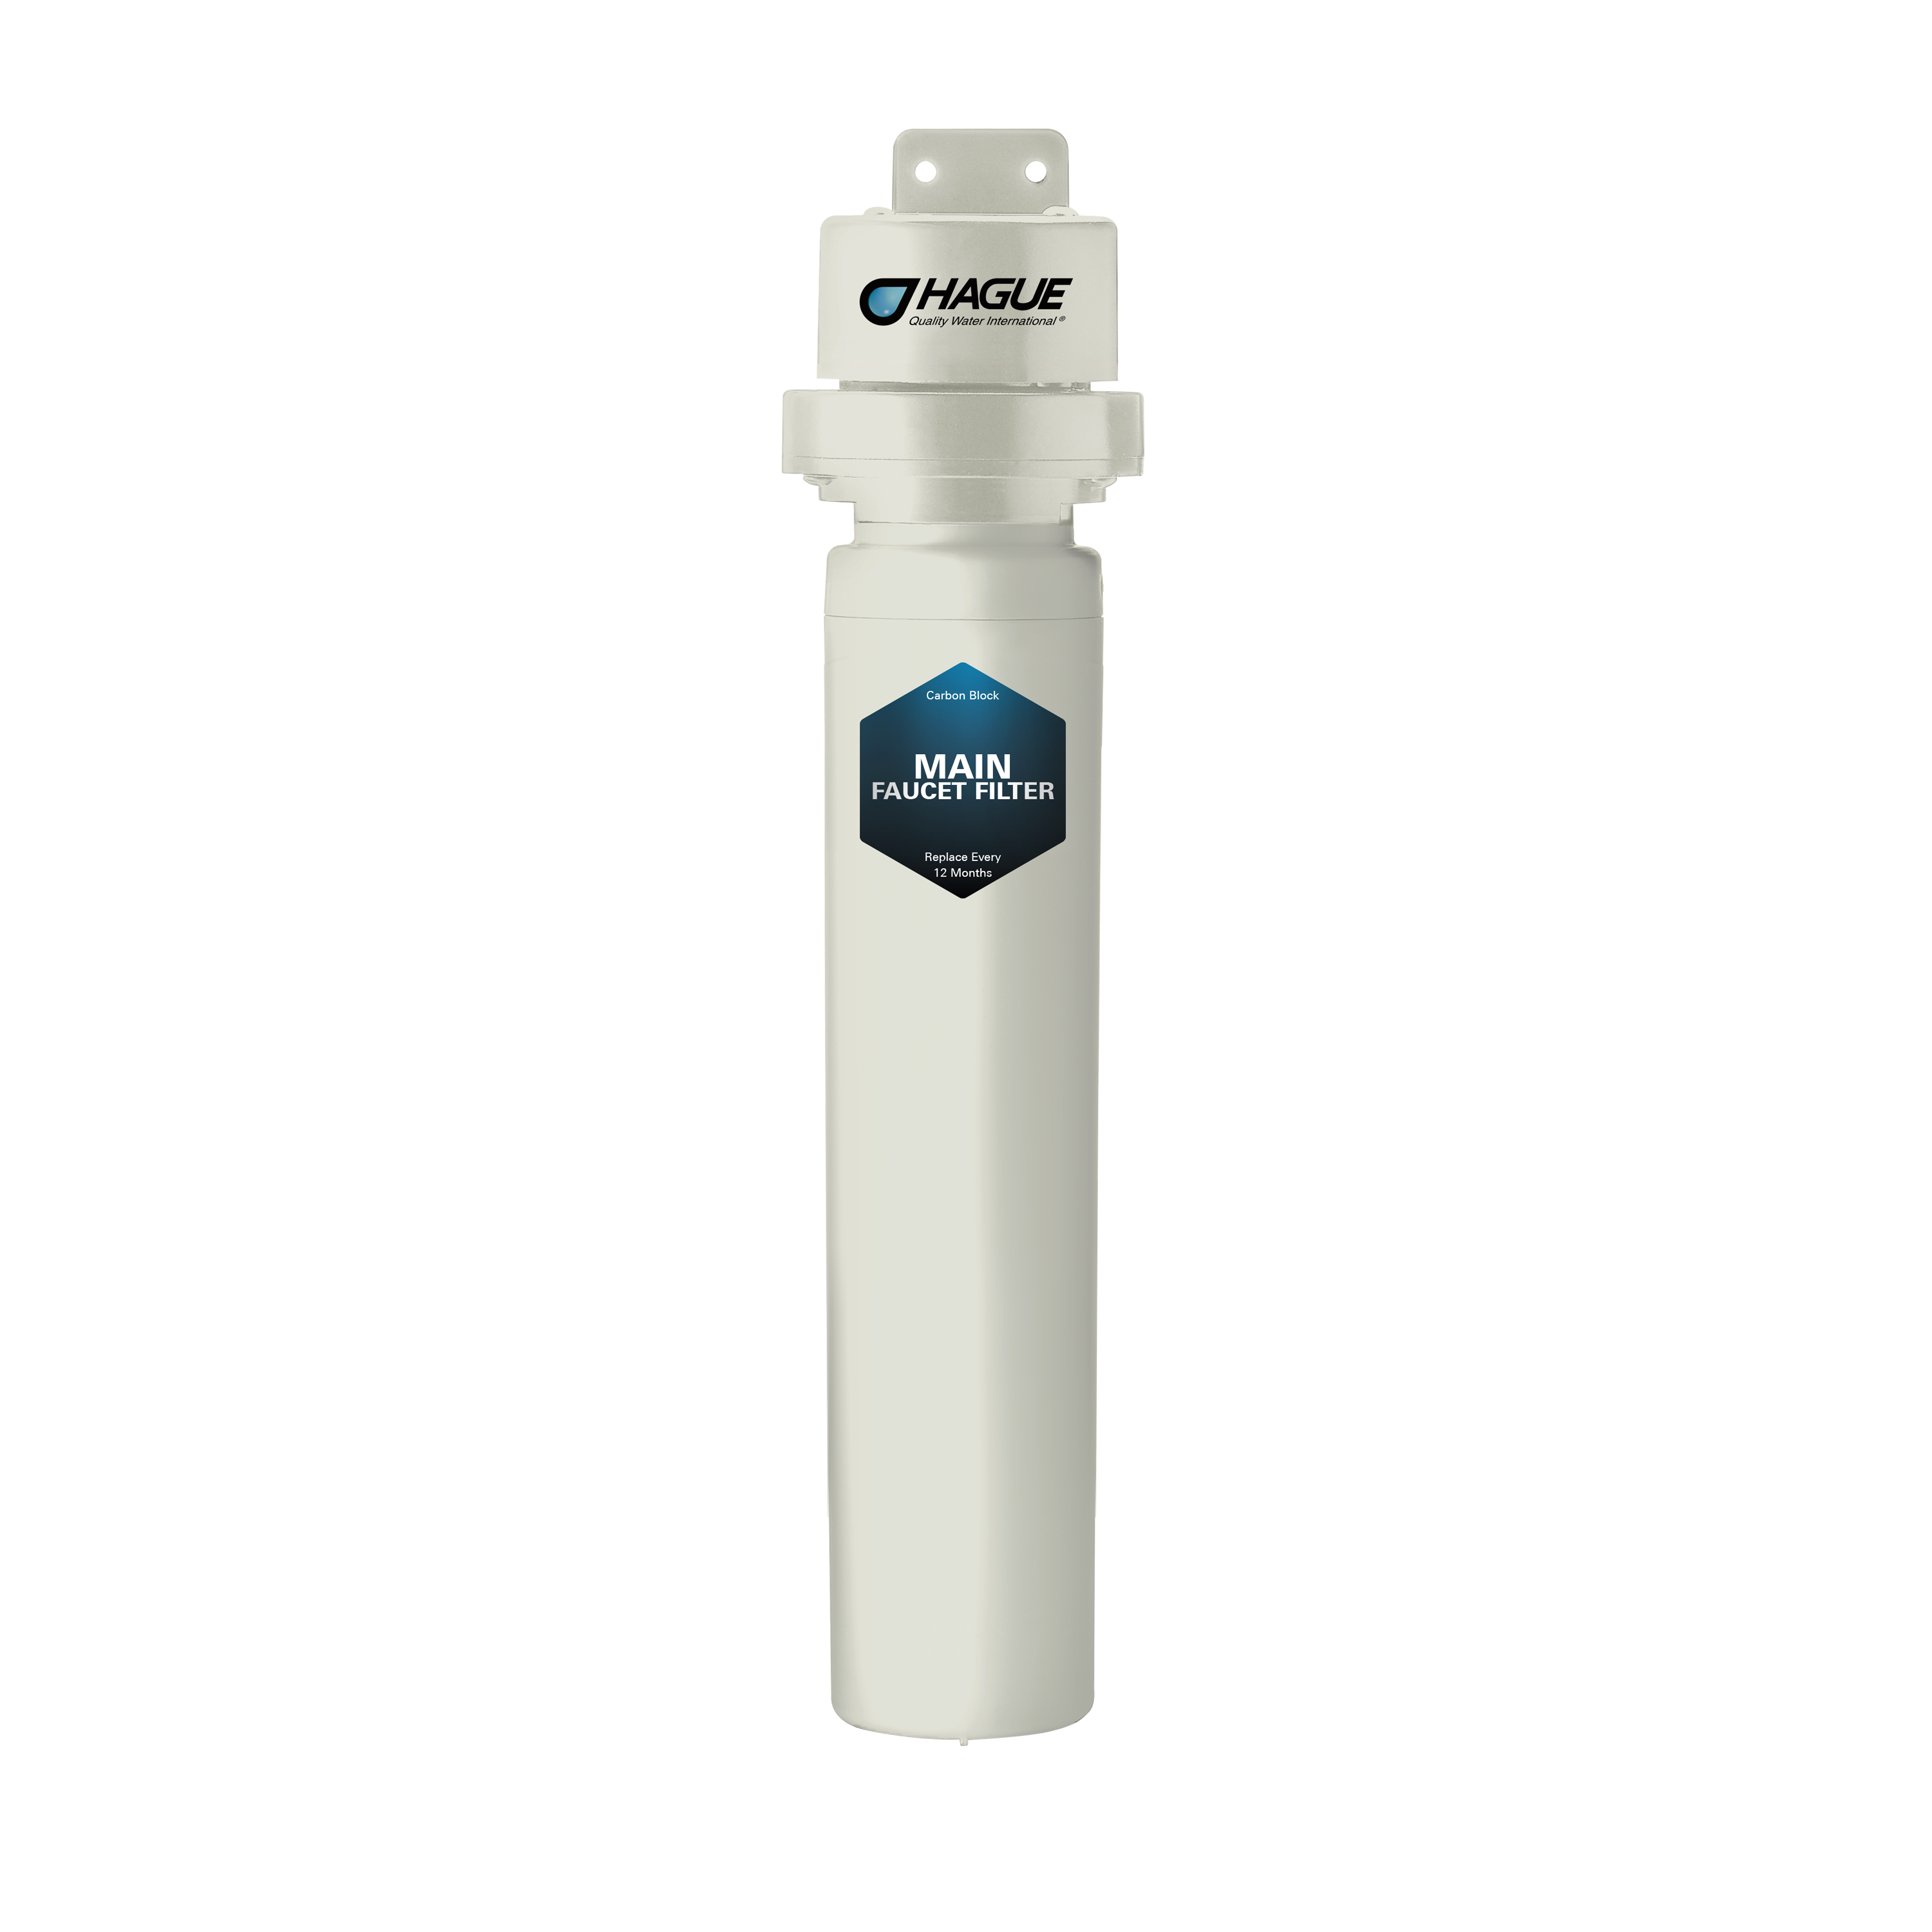 The Hague Main filter is a compact, undersink filter that will deliver clean, safe water directly to your primary cold water faucet. The carbon block filter will treat up to 7900 gallons of water and is effective for the reduction of chlorine, lead and cryptosporidium, among others. It is simple to install and maintain and is a quick and easy solution, particularly for lead reduction without having to use pitchers or more complicated, expensive filtration.